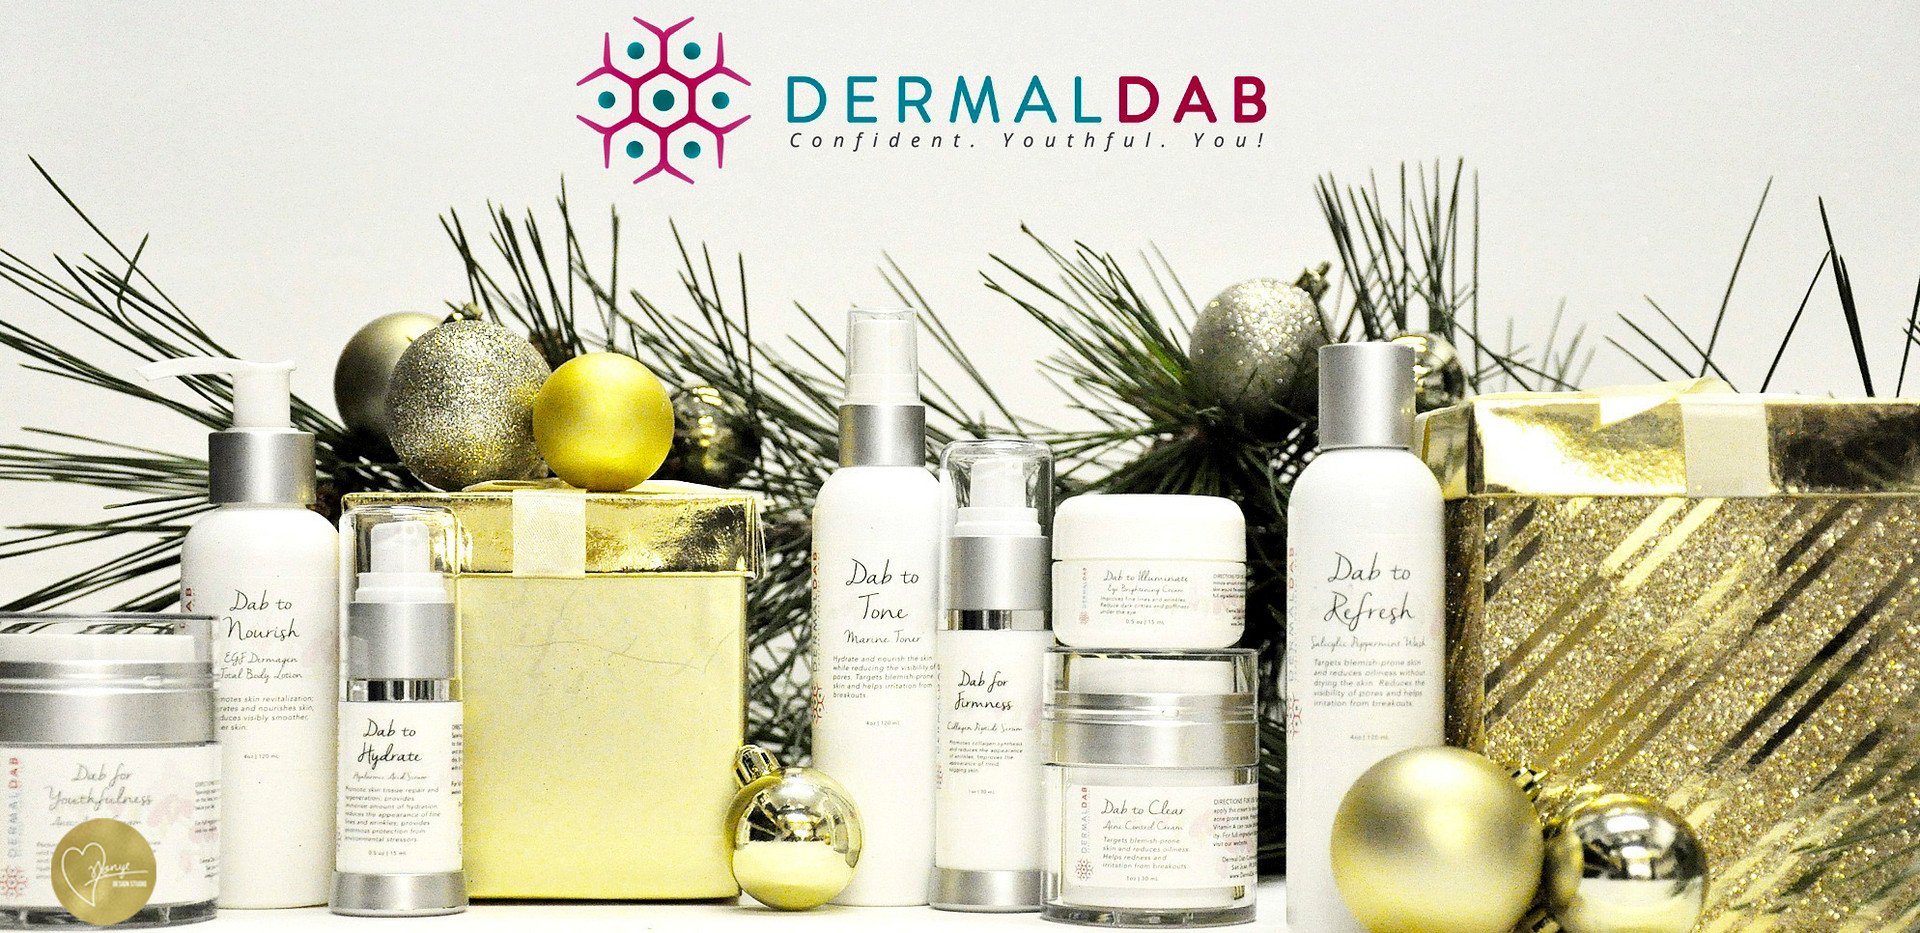 About the Project (December 2016):  As the Social Media Manager for Kayla Creative Marketing & Design Agency, I worked with clients within social media to build their visual brand precence! A holiday themed Social Media campaign was curated for Dermal Dab, a skin care line based in Virginia. The concept was staging their products throughout a Christmas theme for their social media channels. The mission was to gain brand awareness in a fun and festive way! This campaign also won the 2017 SIA Summit International Awards, Summit Creative Award for a Social Media Campaign by an agency!  Stay tuned for more photos from this campaign and and mini branding refresh!